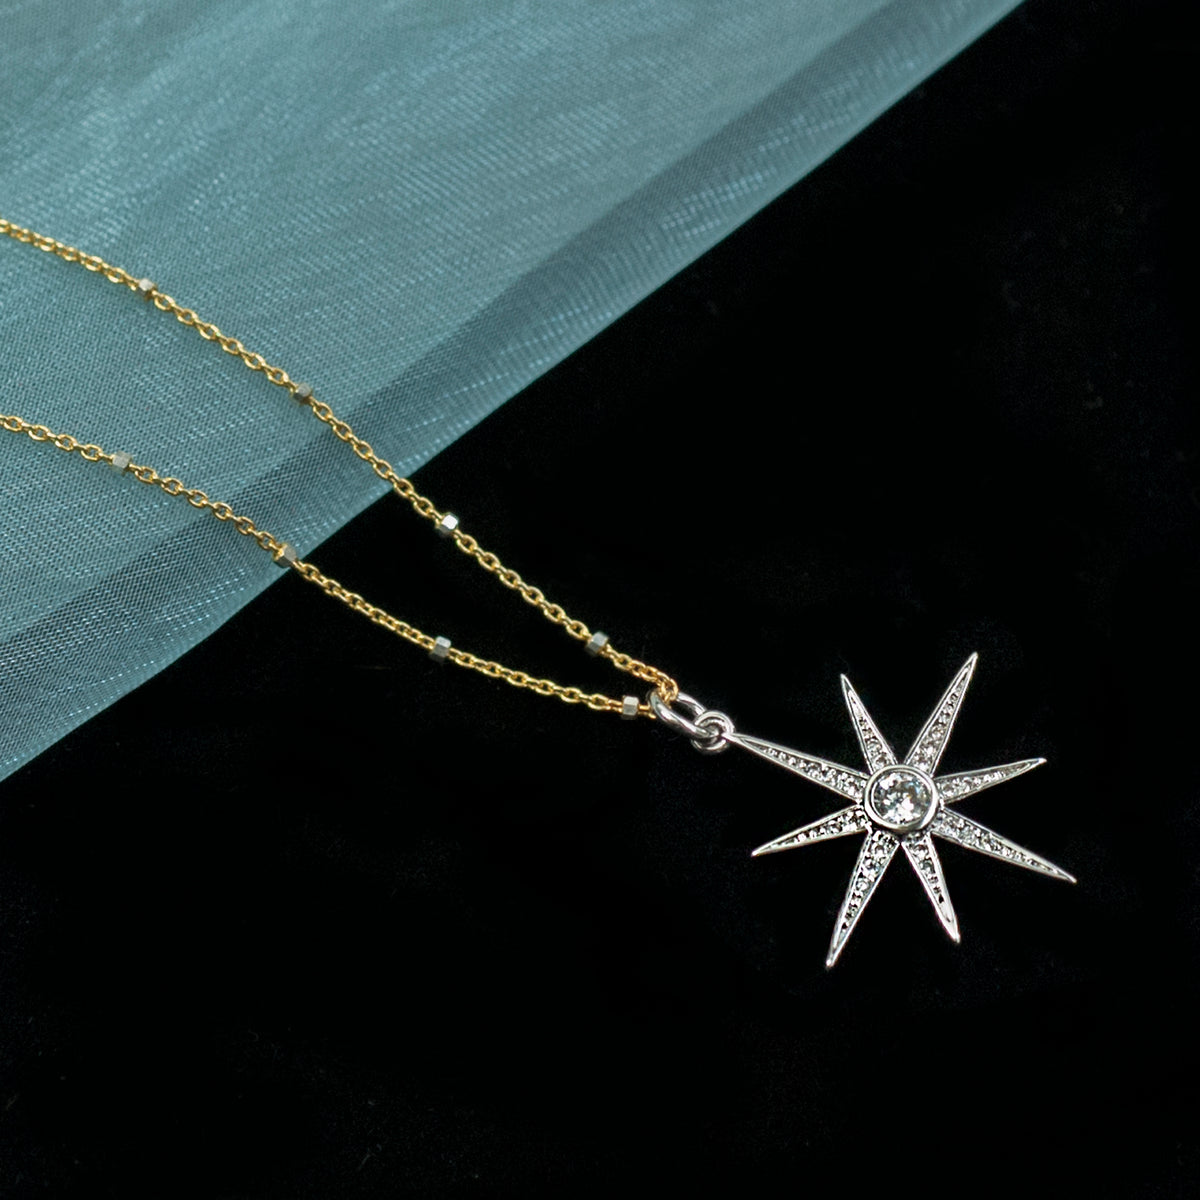 North Star Pendant Necklace N1702 - Sweet Romance Wholesale